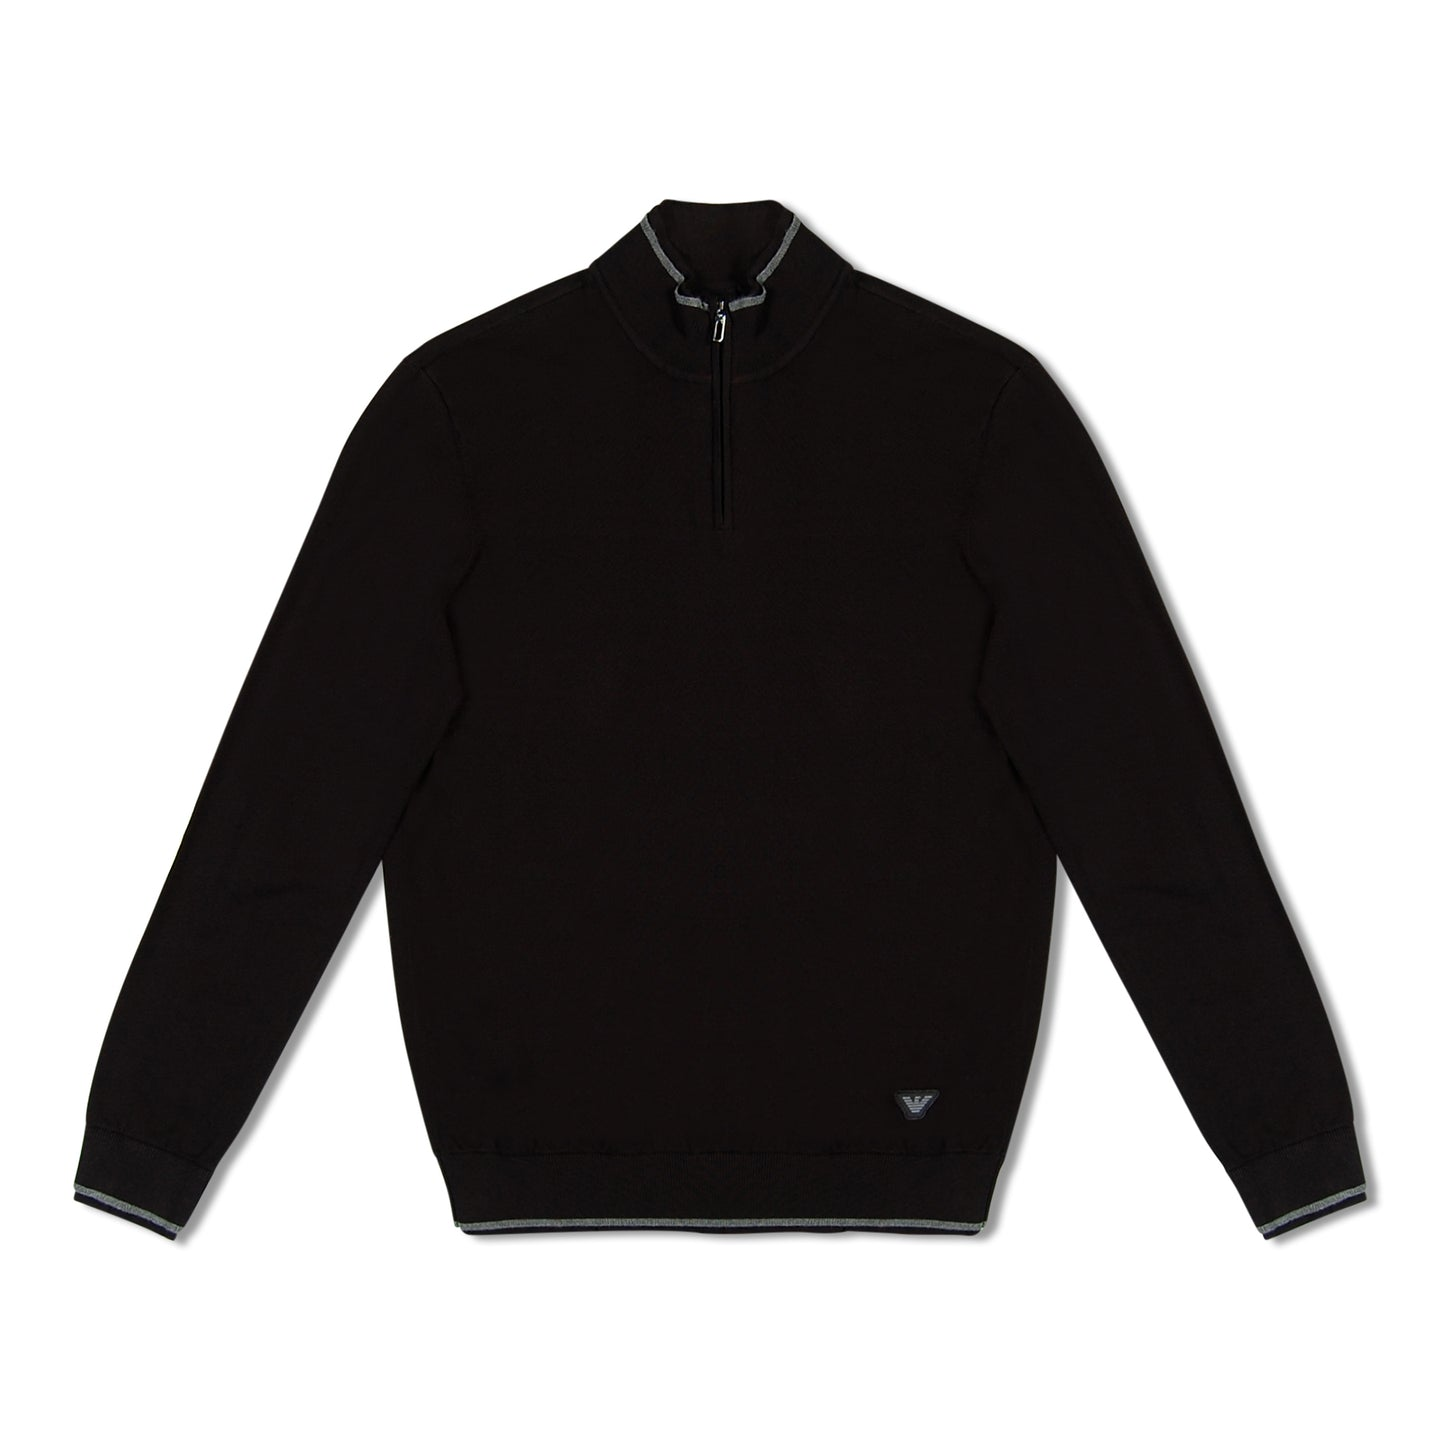 Black Emporio Armani Knitted Zip Through Pullover